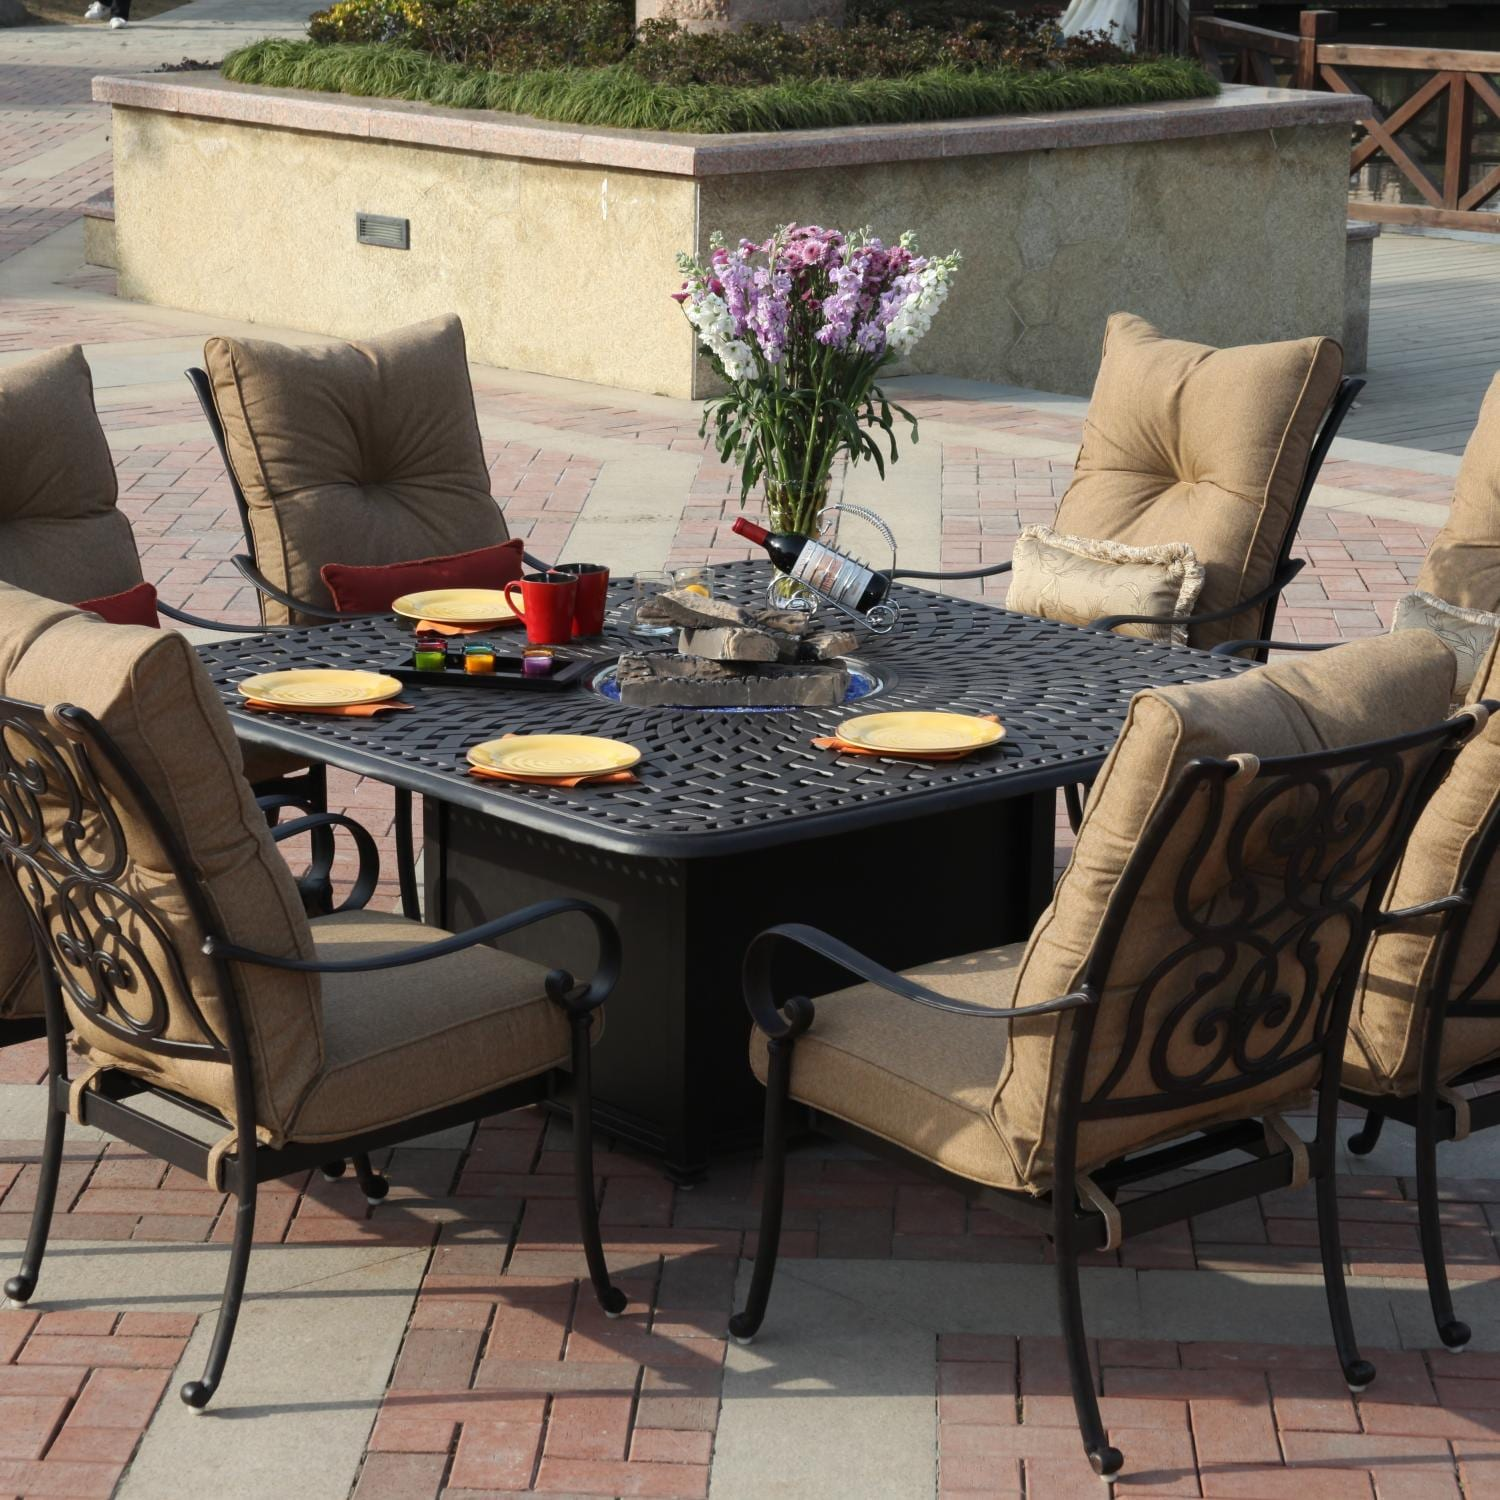 Darlee Santa Anita 8 Person Cast Aluminum Patio Fire Pit Dining Set Ultimat